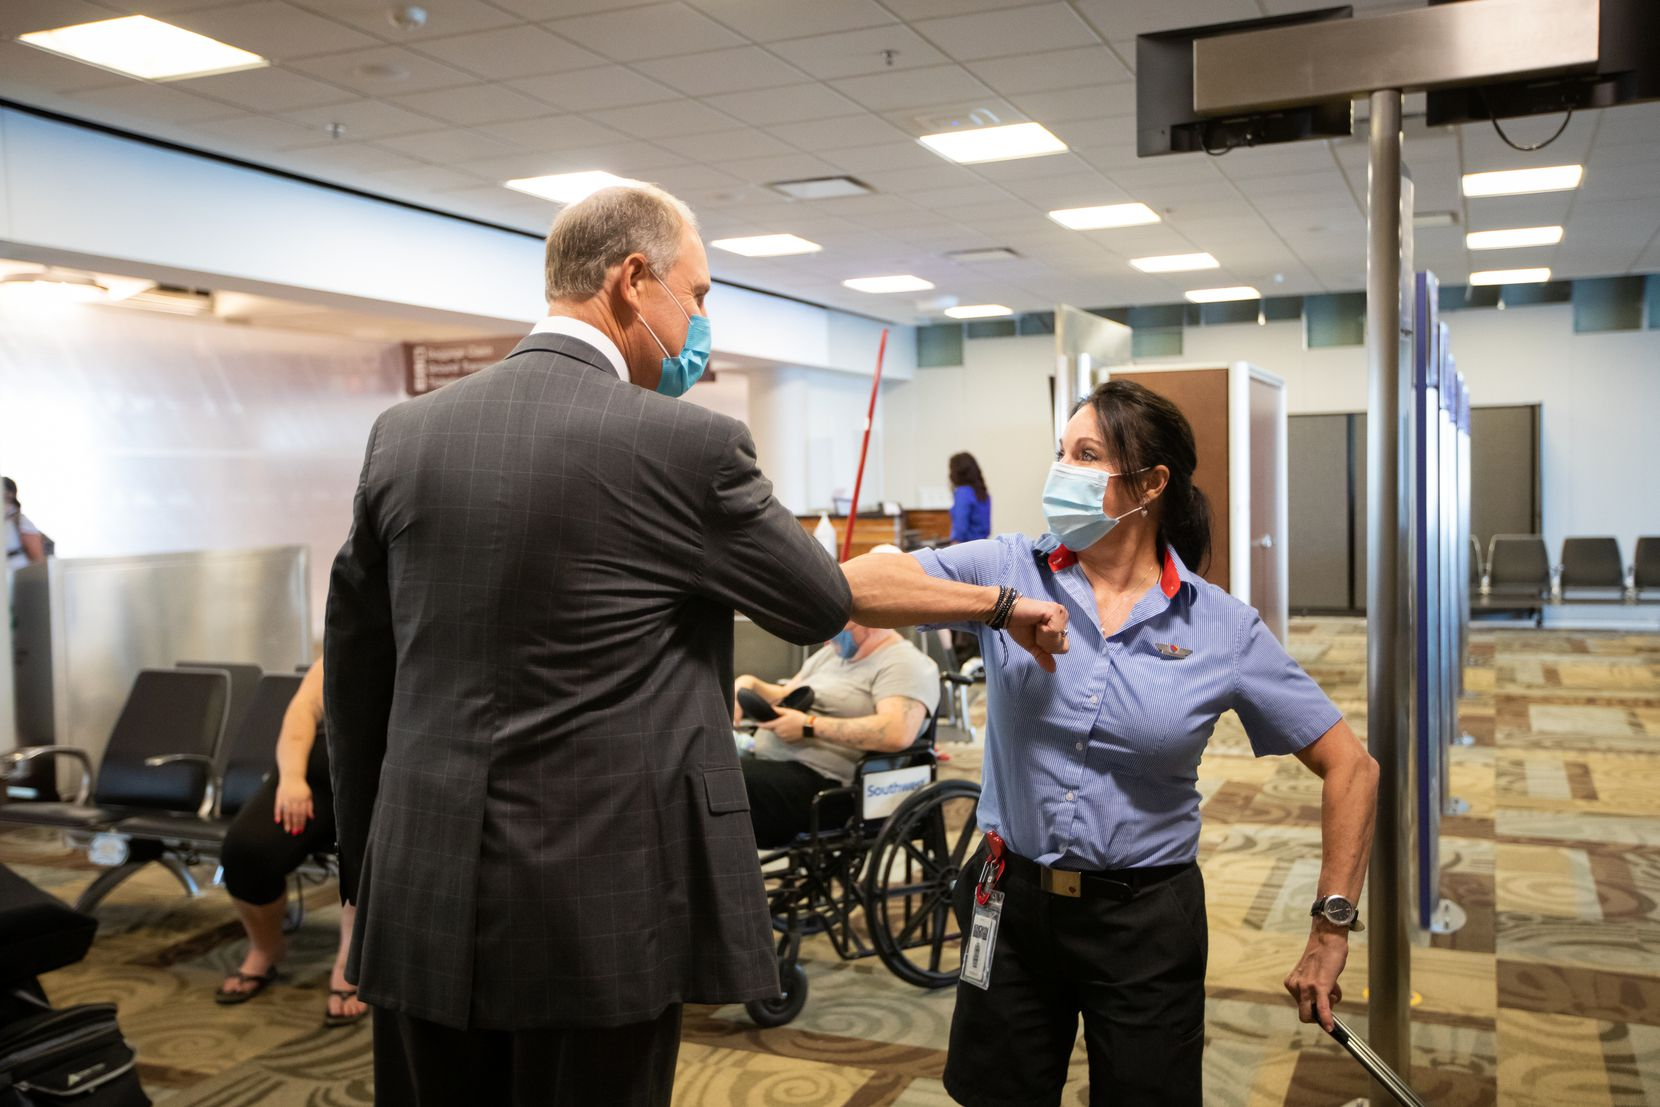 Southwest Airlines CEO Gary Kelly met with employees at Nashville International Airport in July 2020.